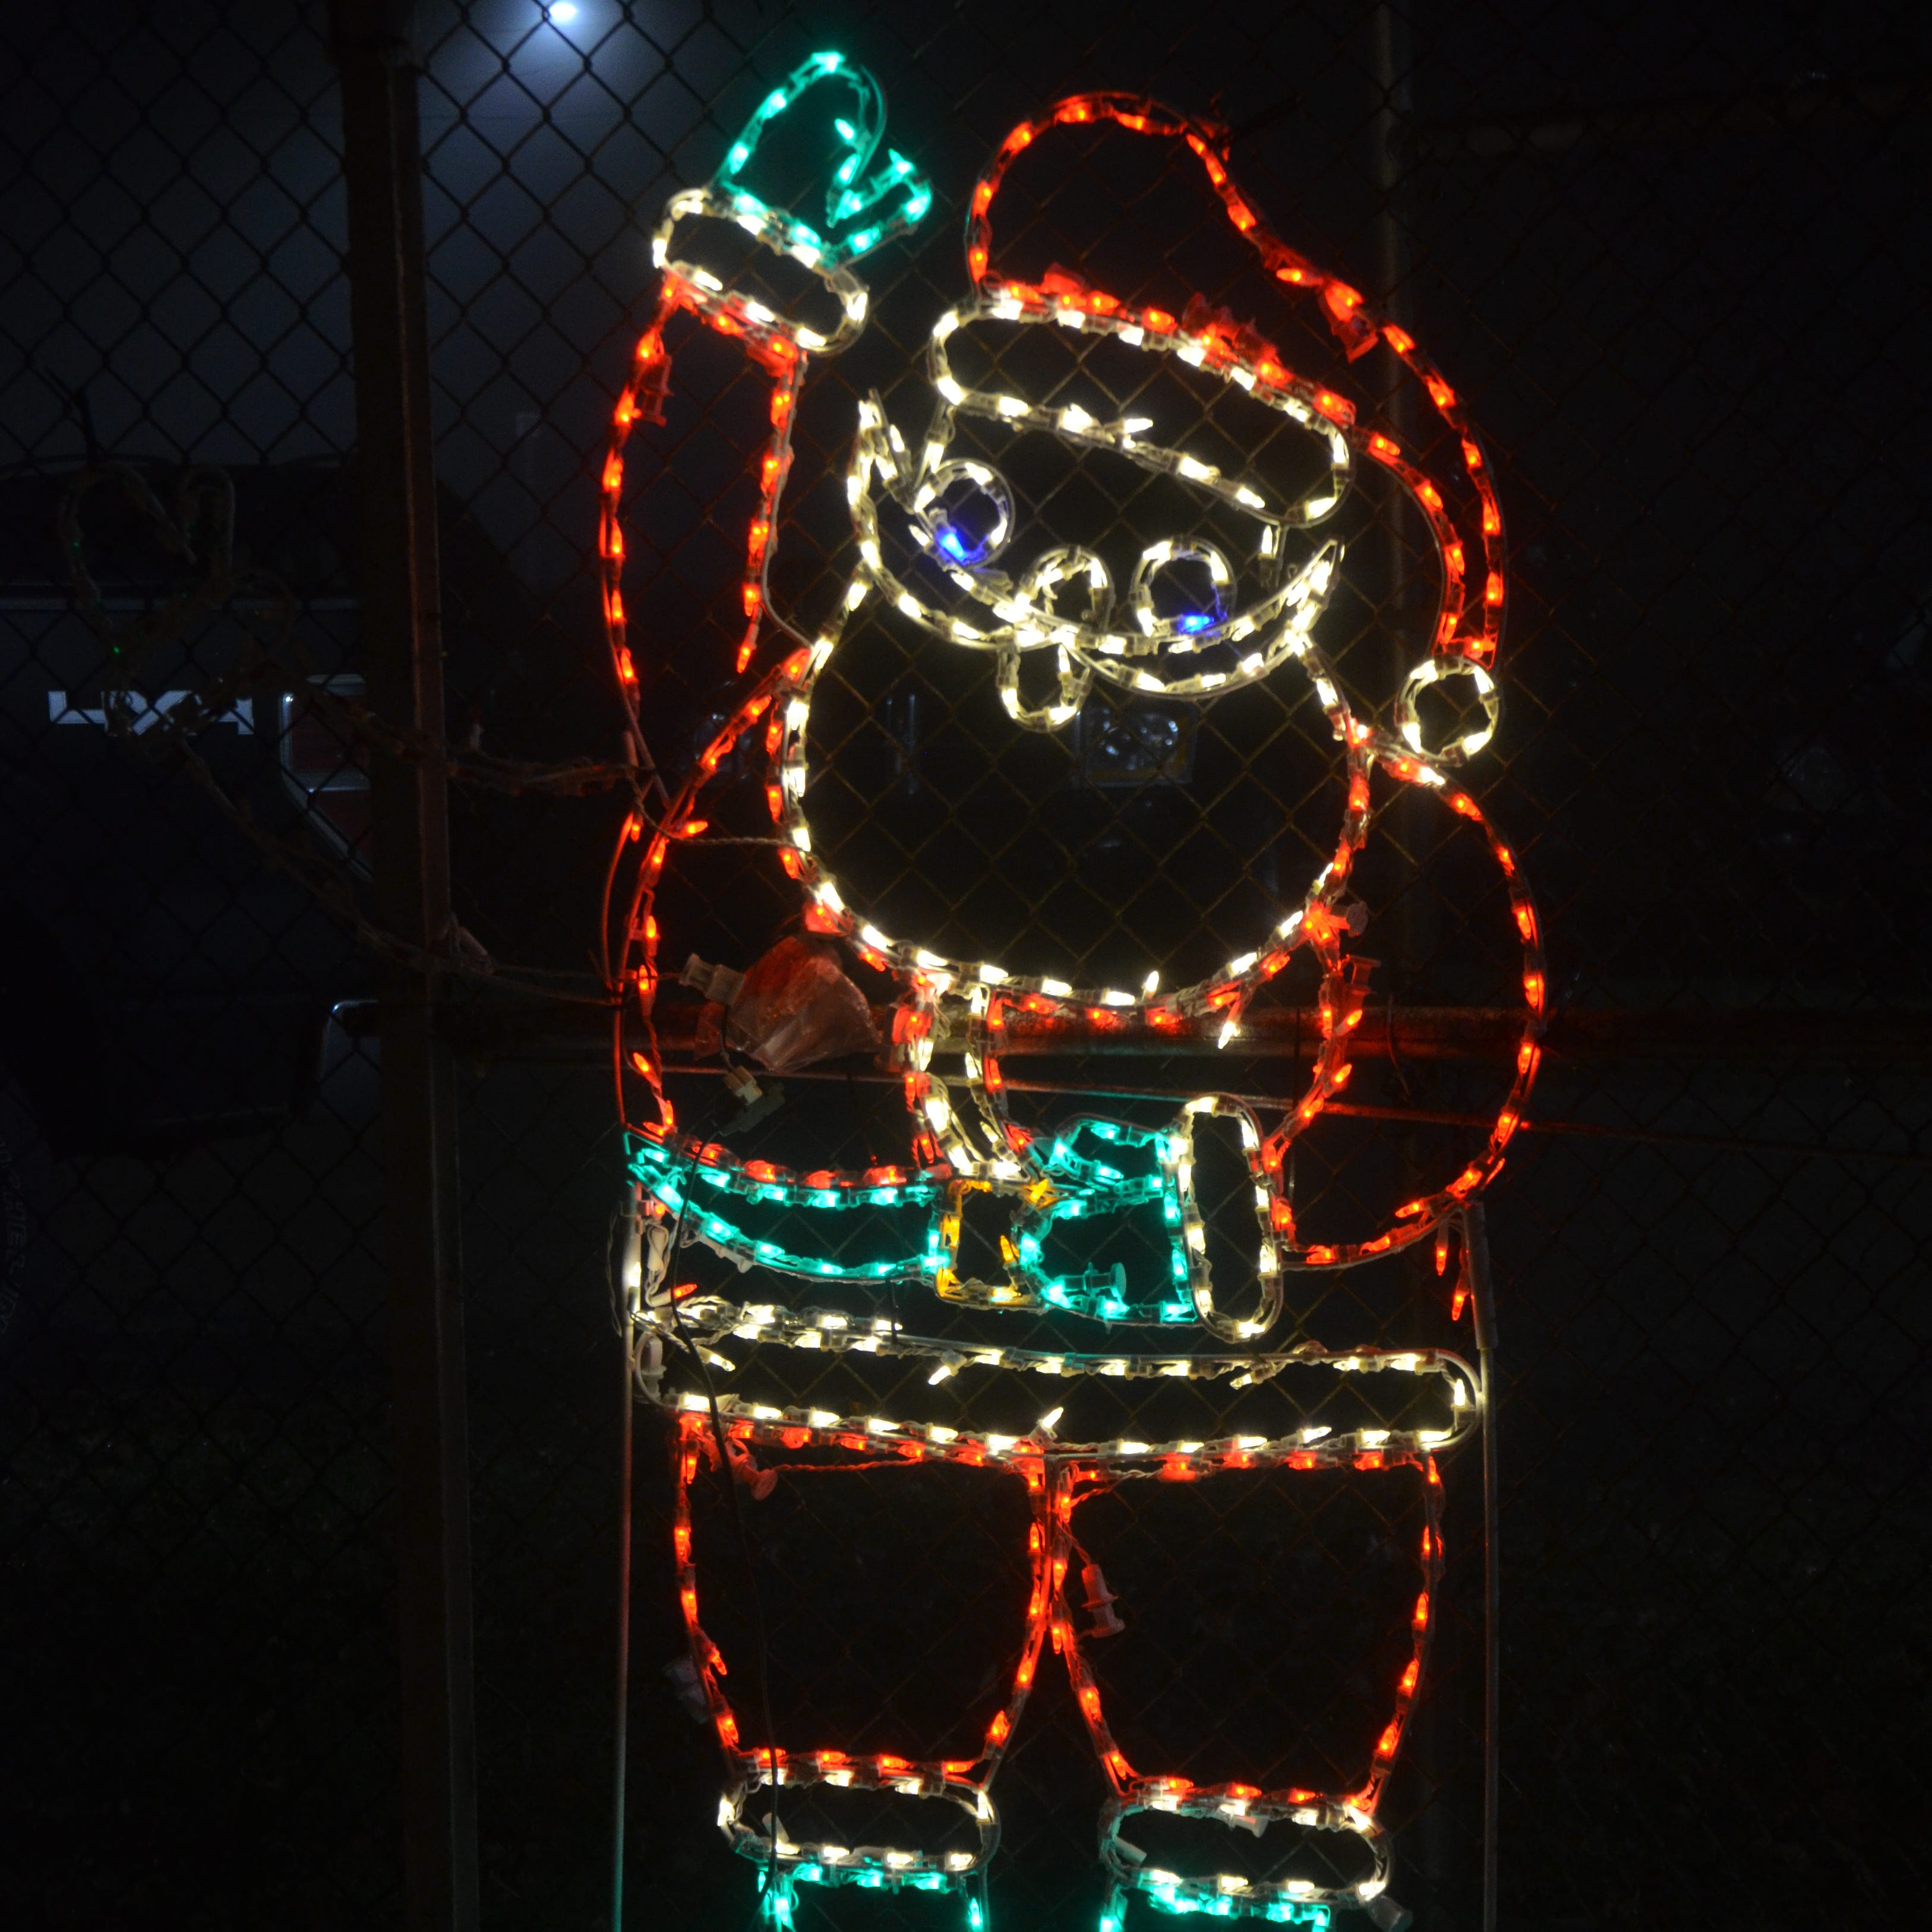 Lights, Santa and hot cocoa at the Merry Mile